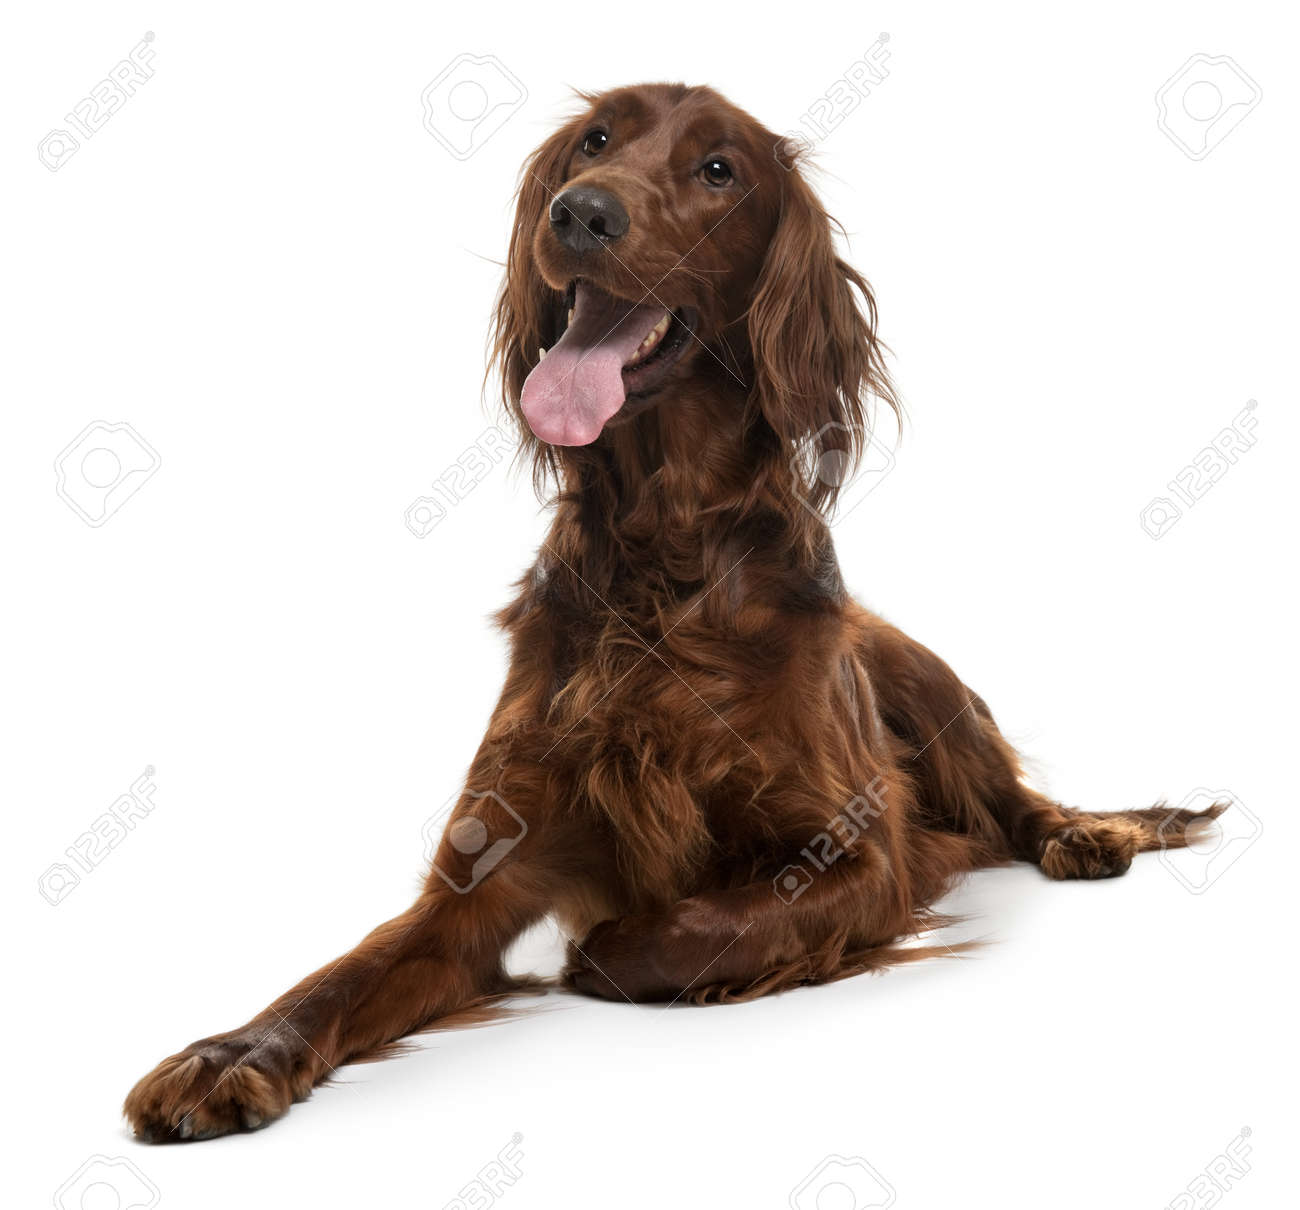 Irish Setter, 2 years old, lying in front of white background Stock Photo - 7127971